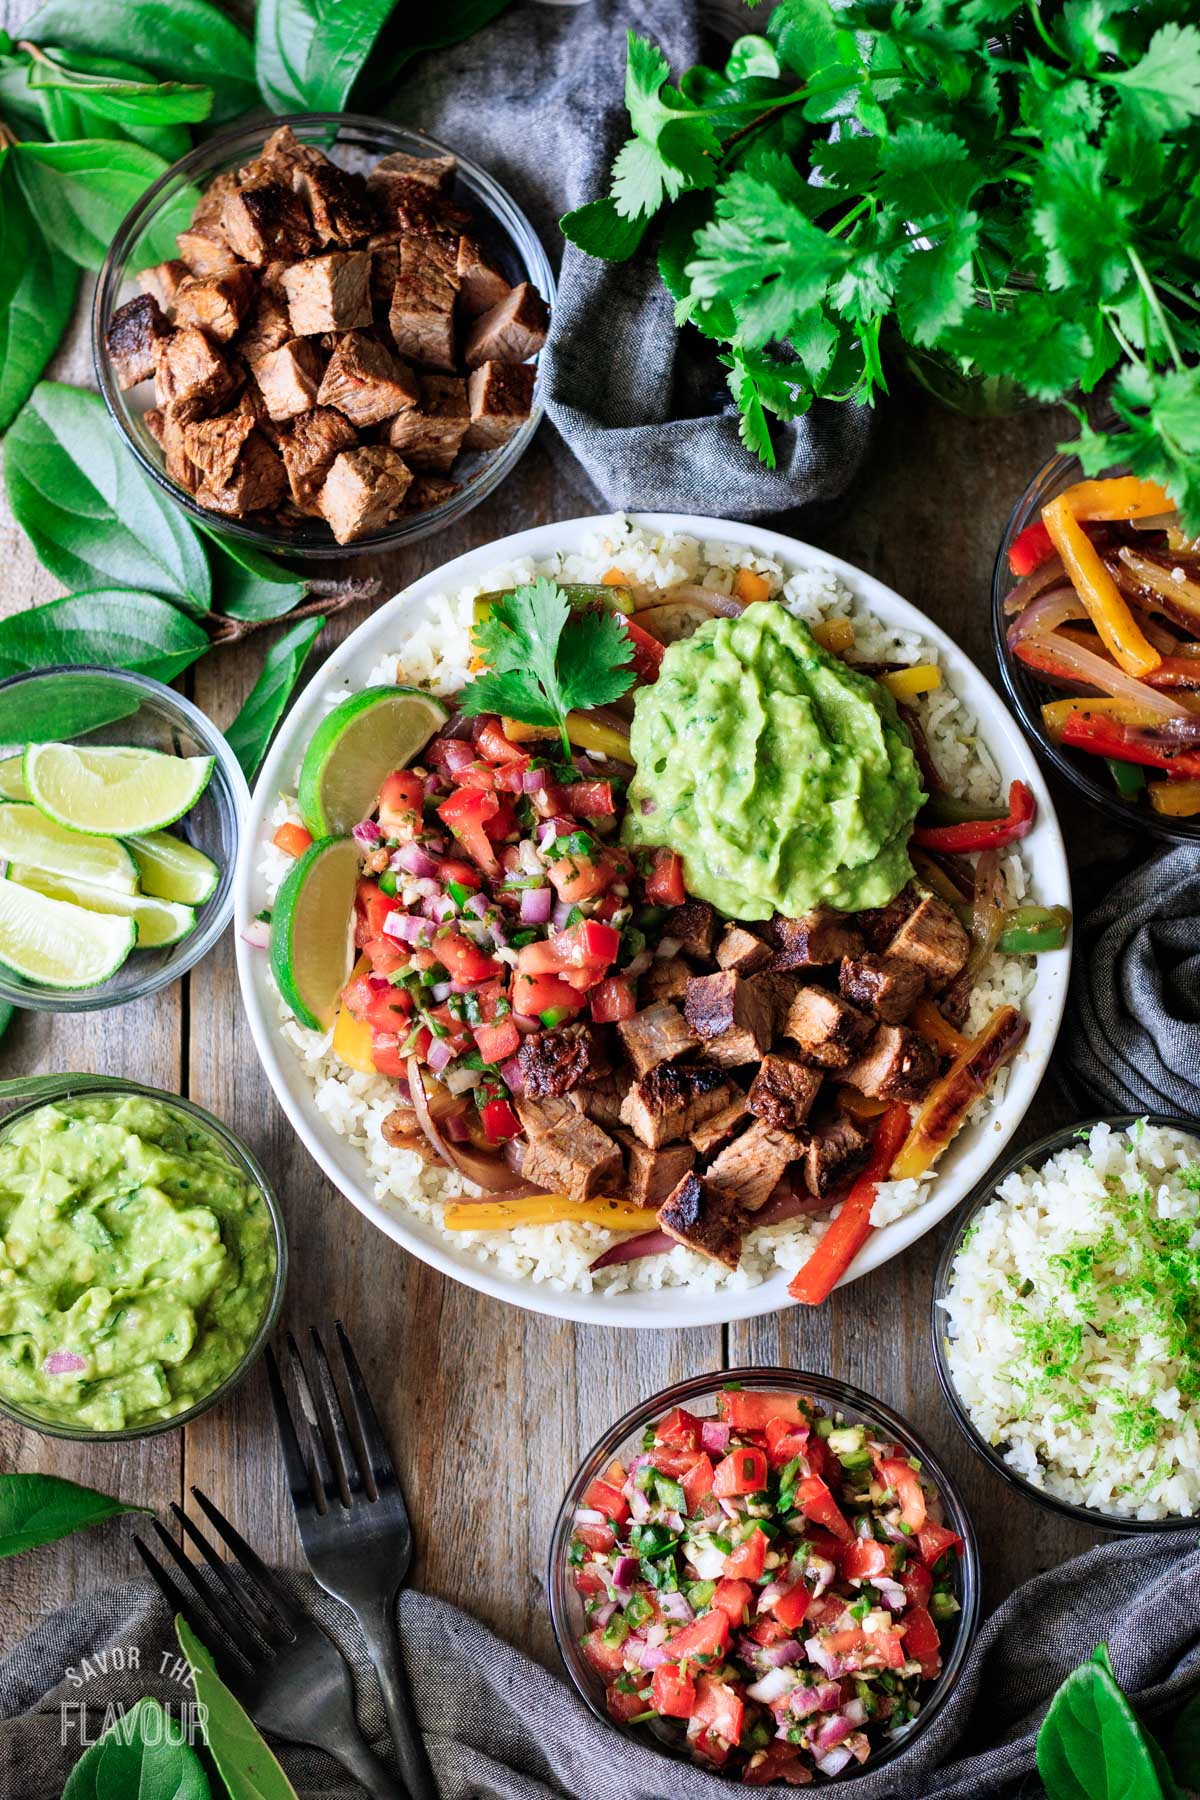 Chipotle steak in a bowl with rice, pico de gallo, and guac